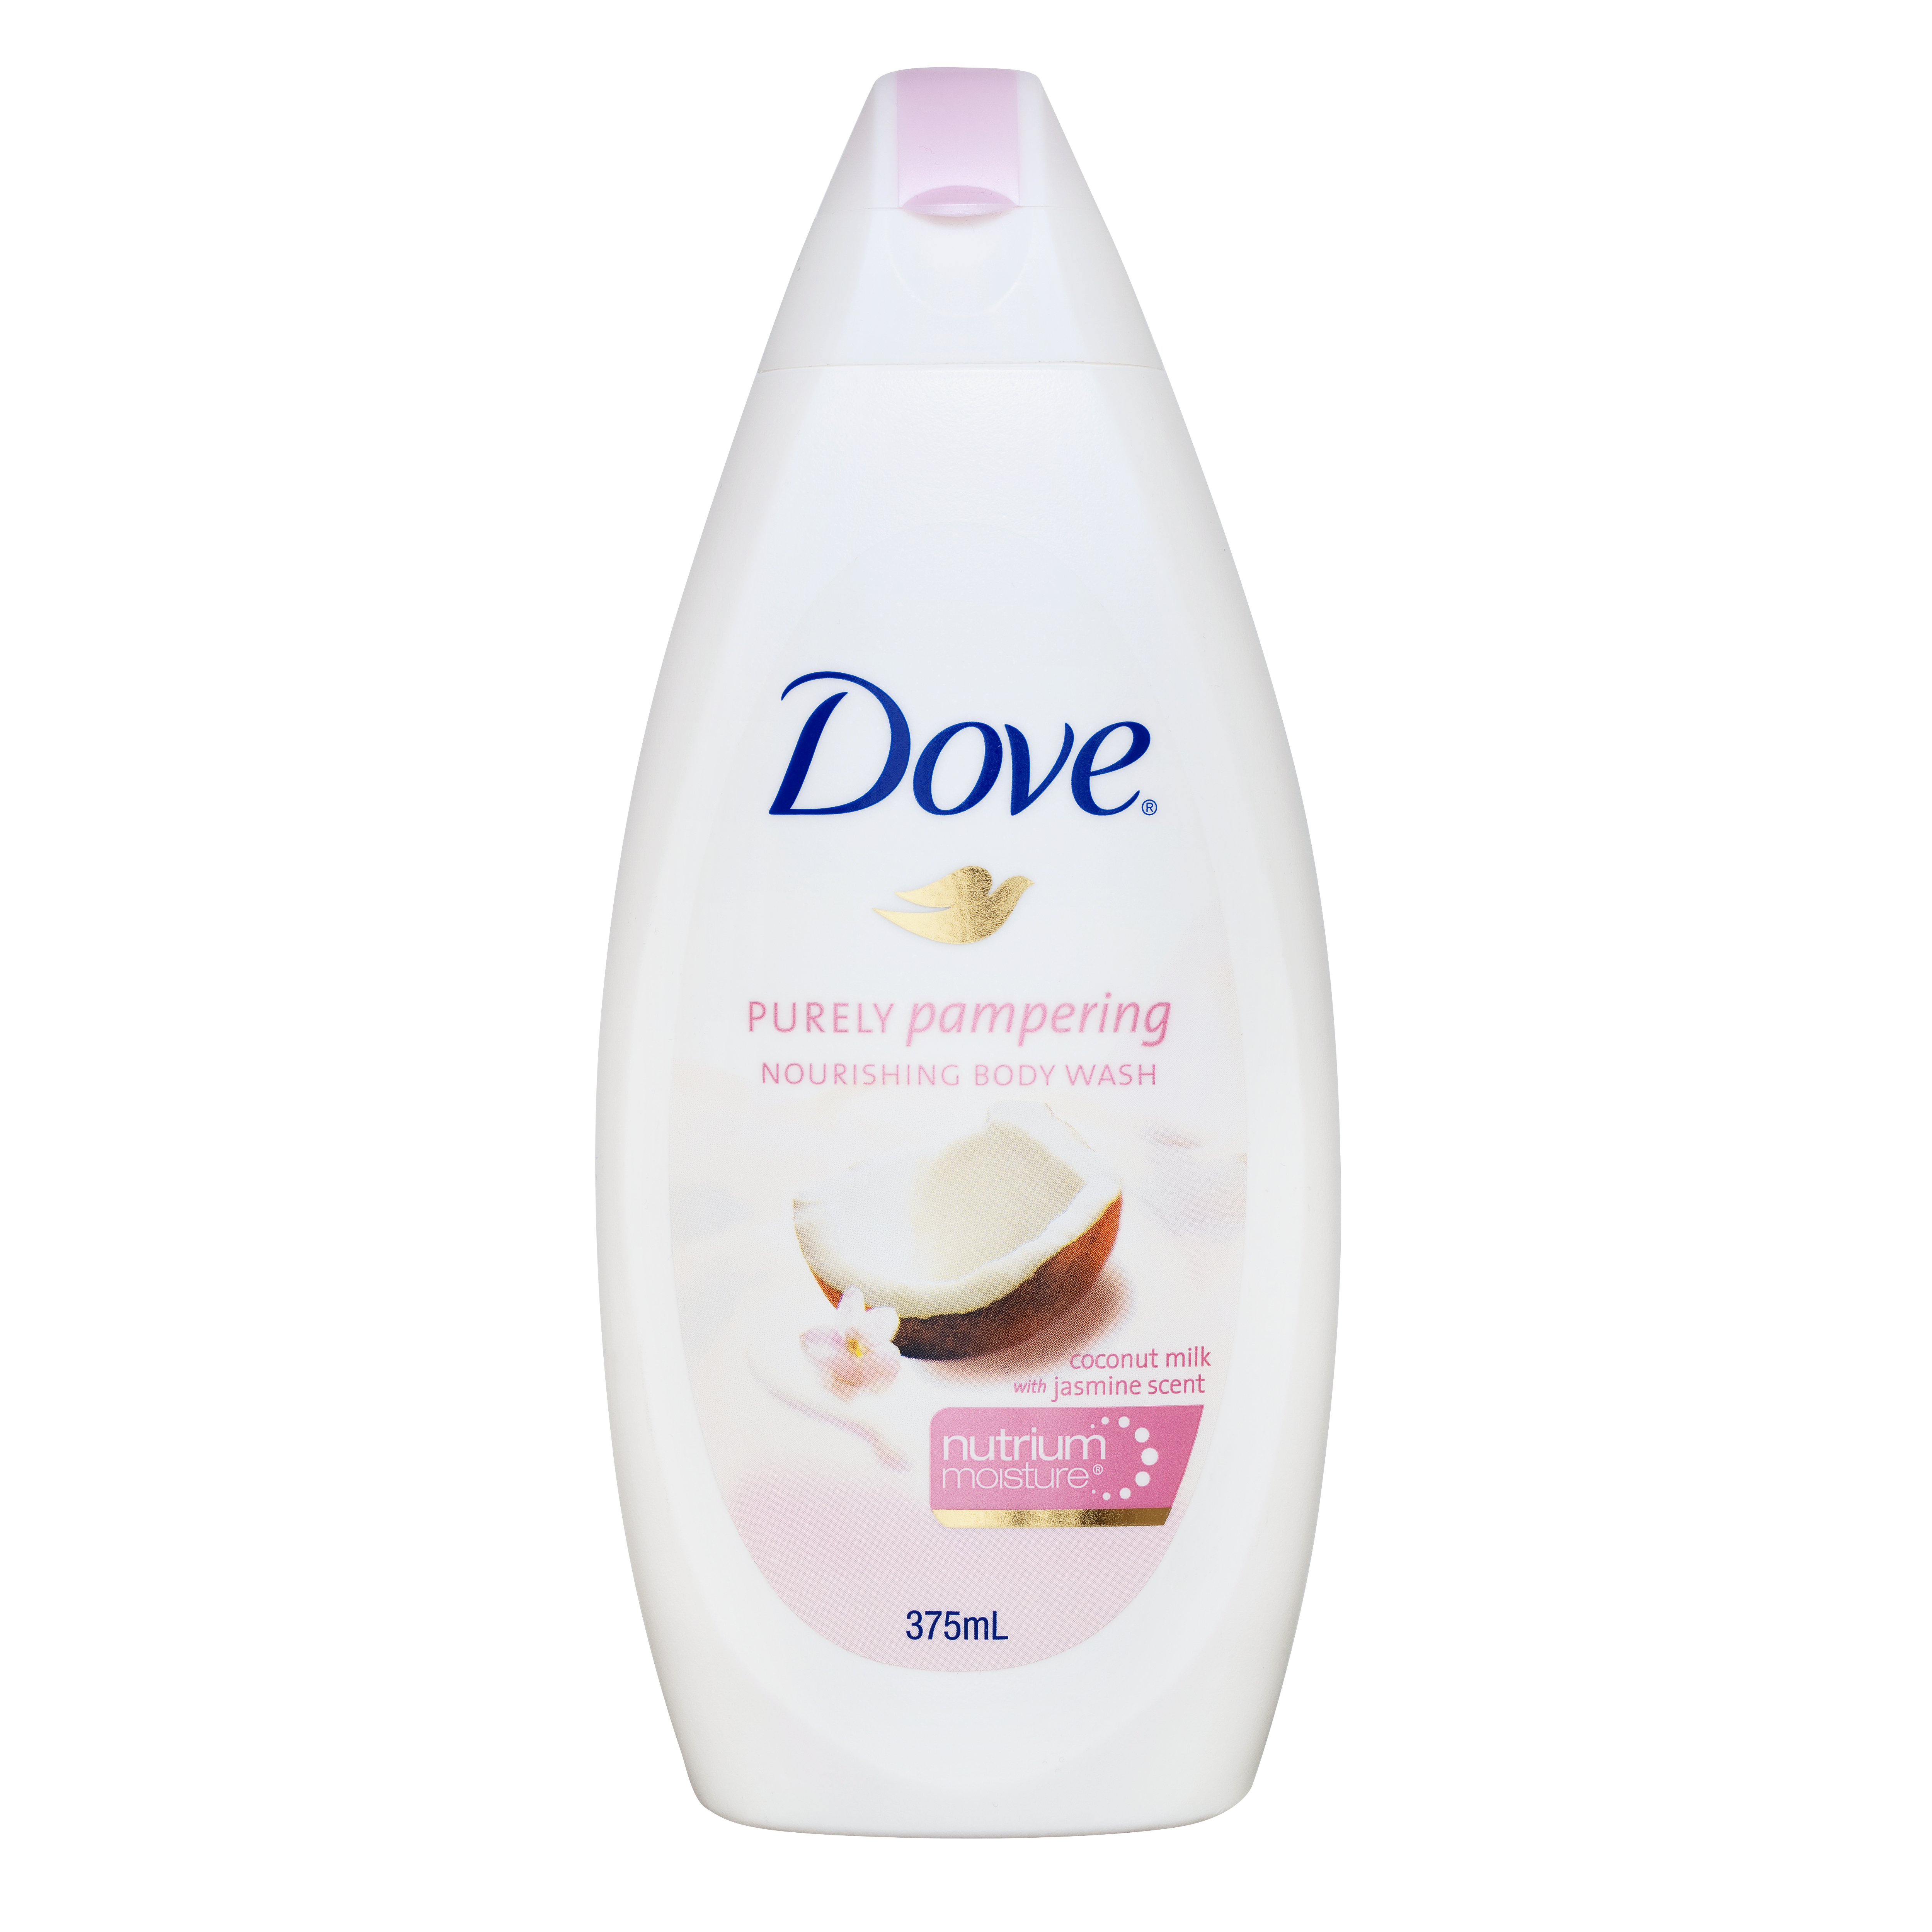 Dove Purely Pampering Nourishing Body Wash with Coconut